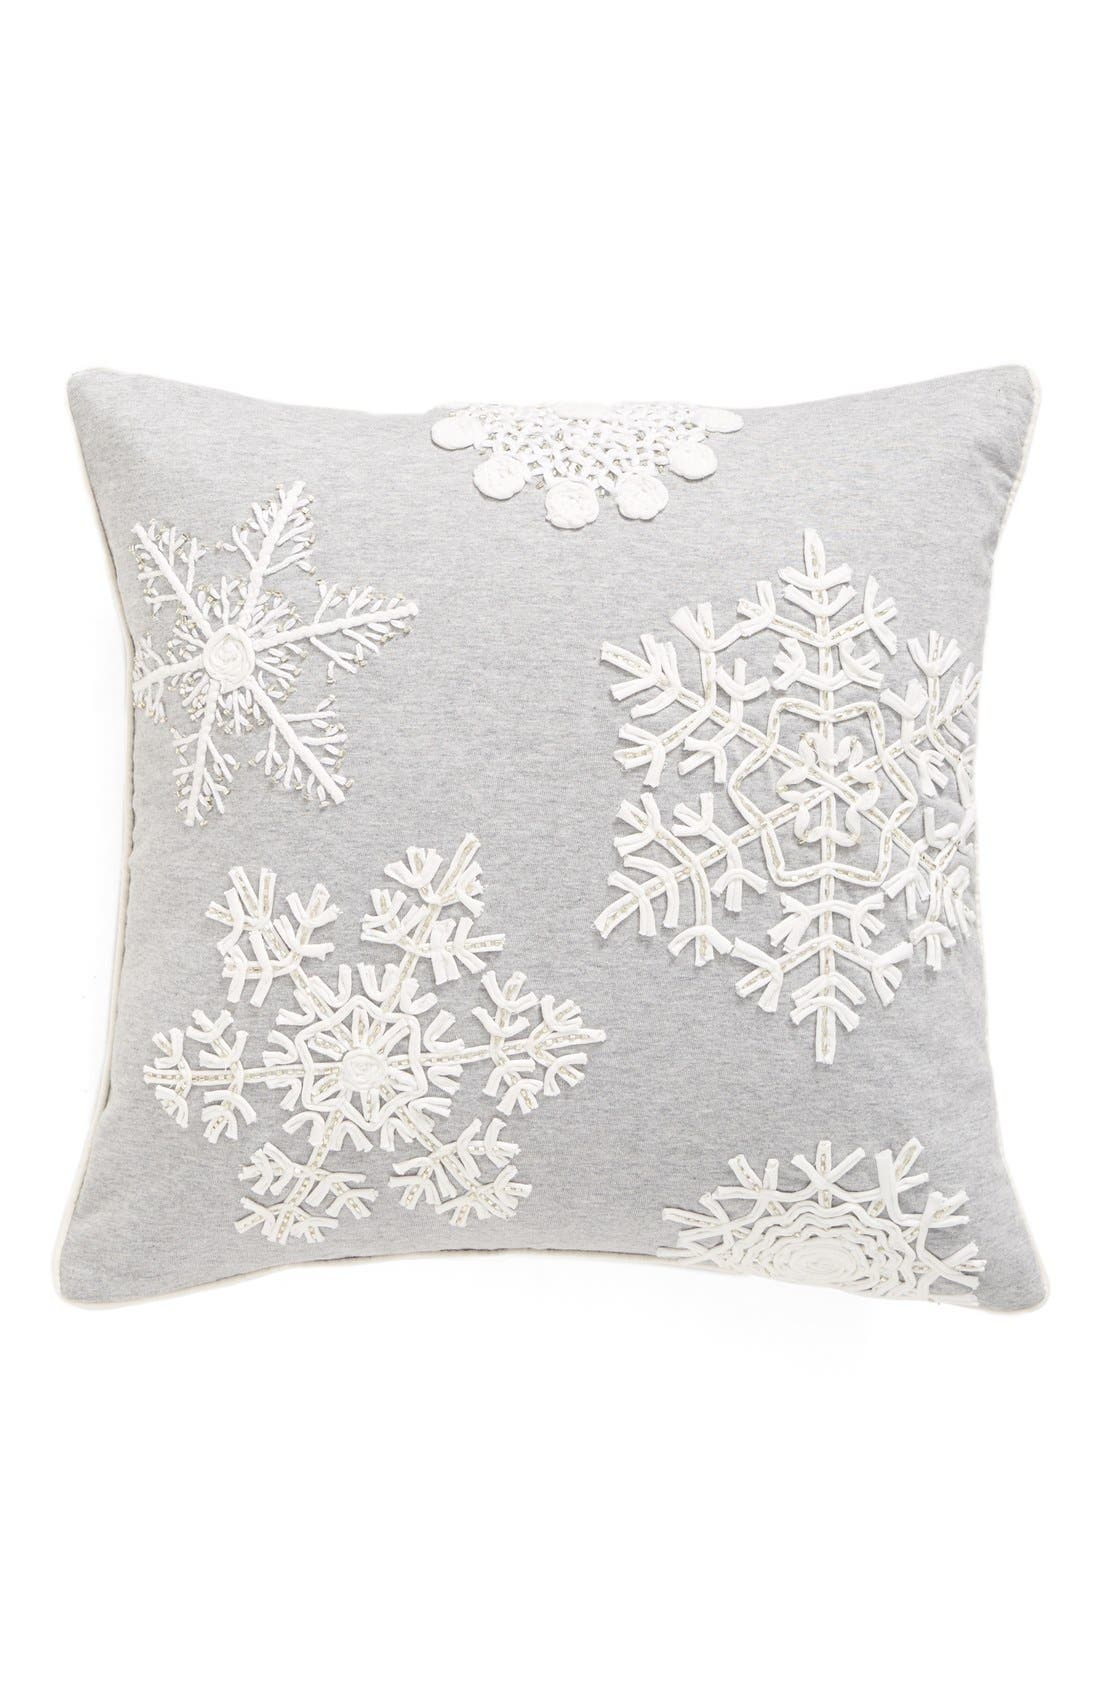 Snowflake Jersey Accent Pillow,                             Main thumbnail 1, color,                             020